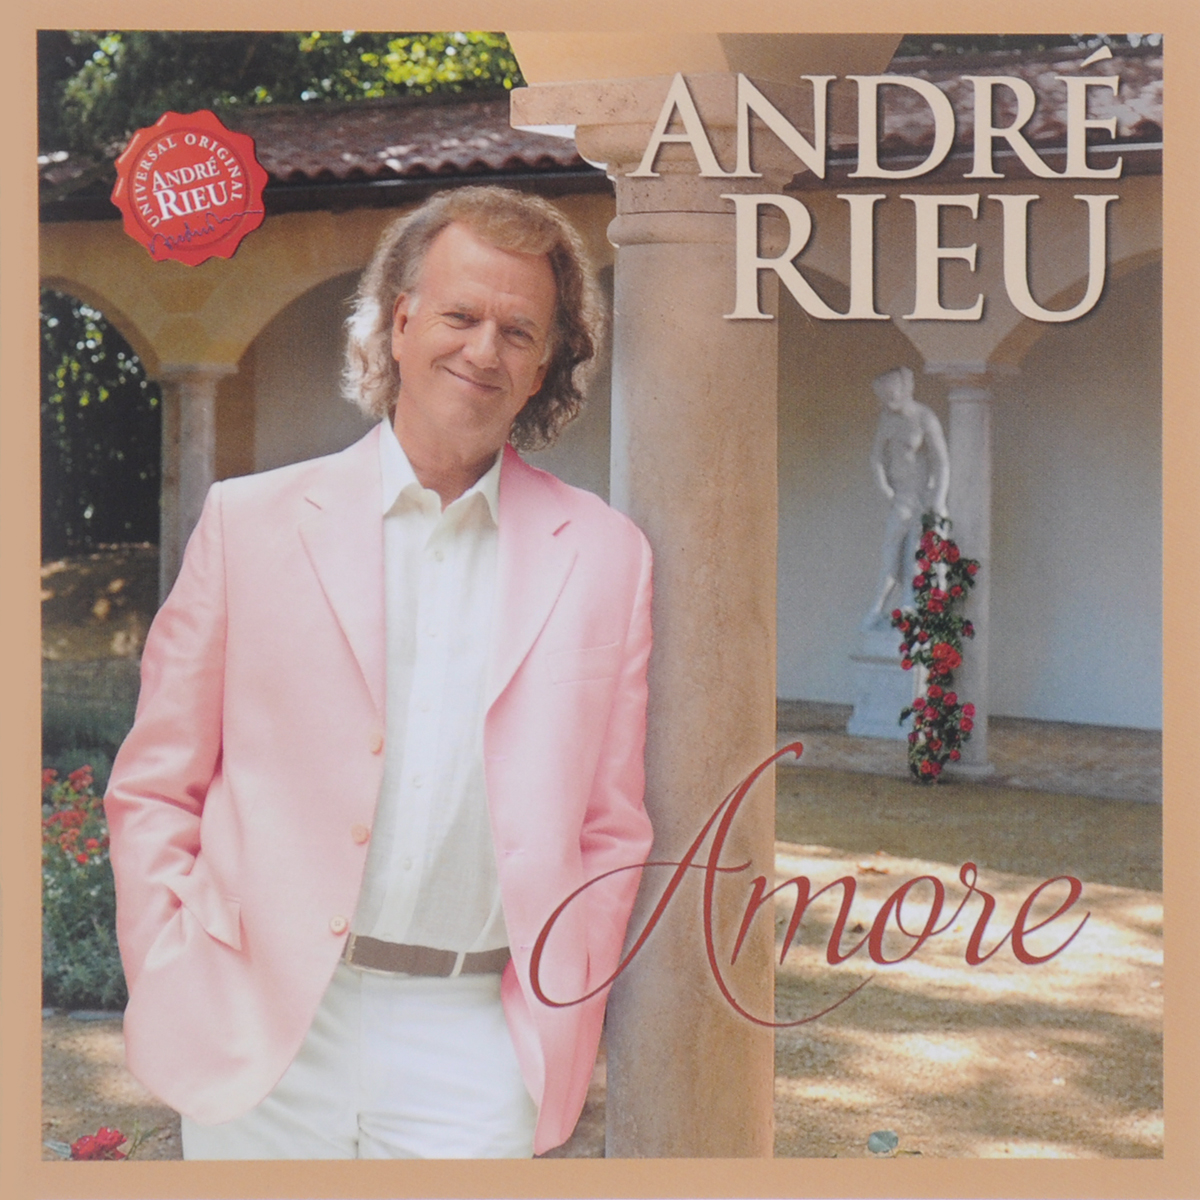 Андрэ Рье Andre Rieu. Amore андрэ рье andre rieu in love with maastricht